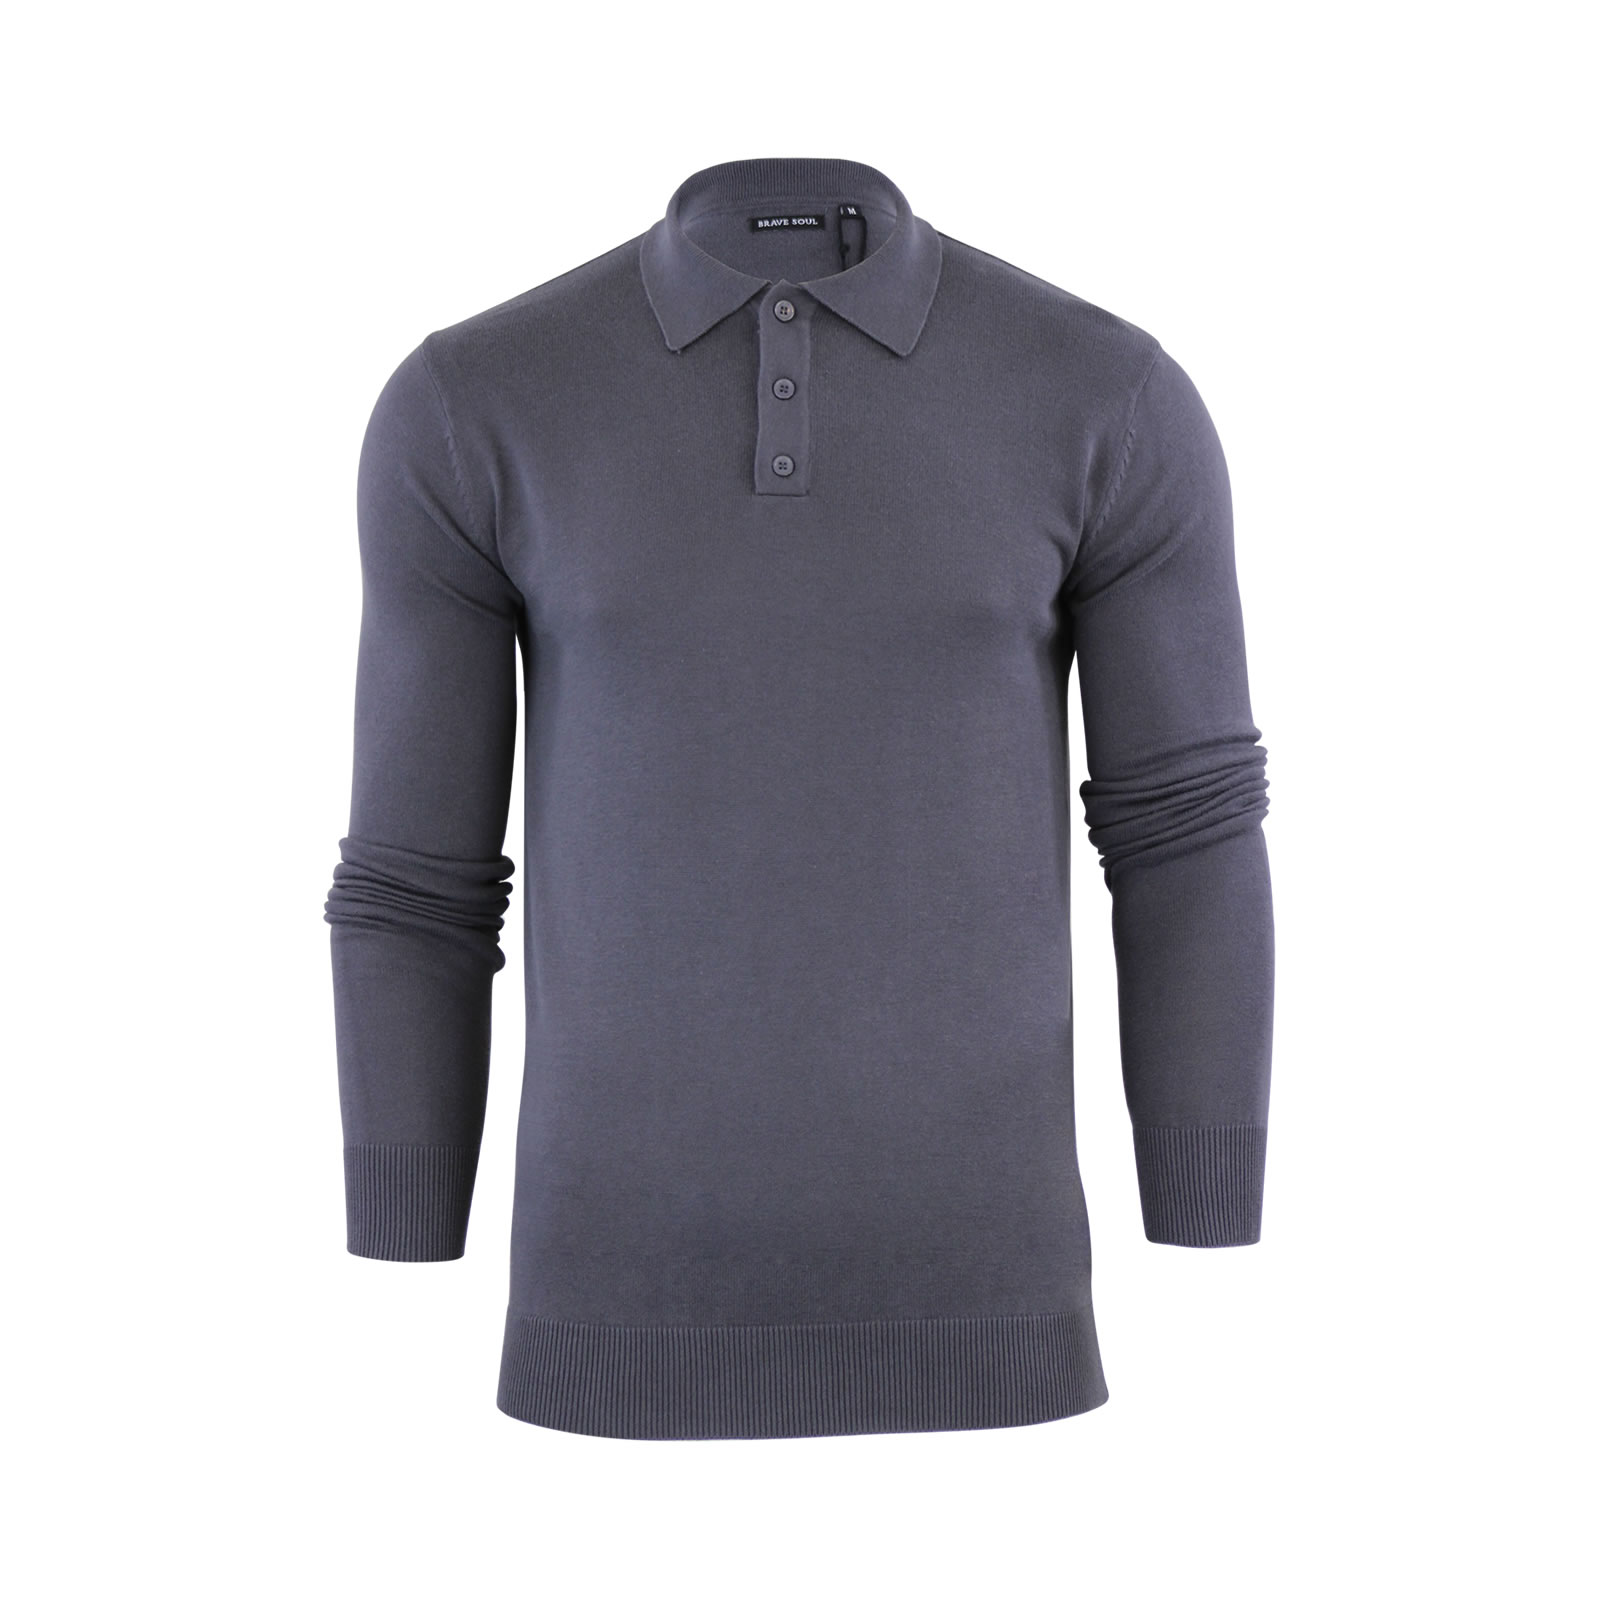 Mens knitted polo t shirt brave soul placket collared for Knitted polo shirt mens